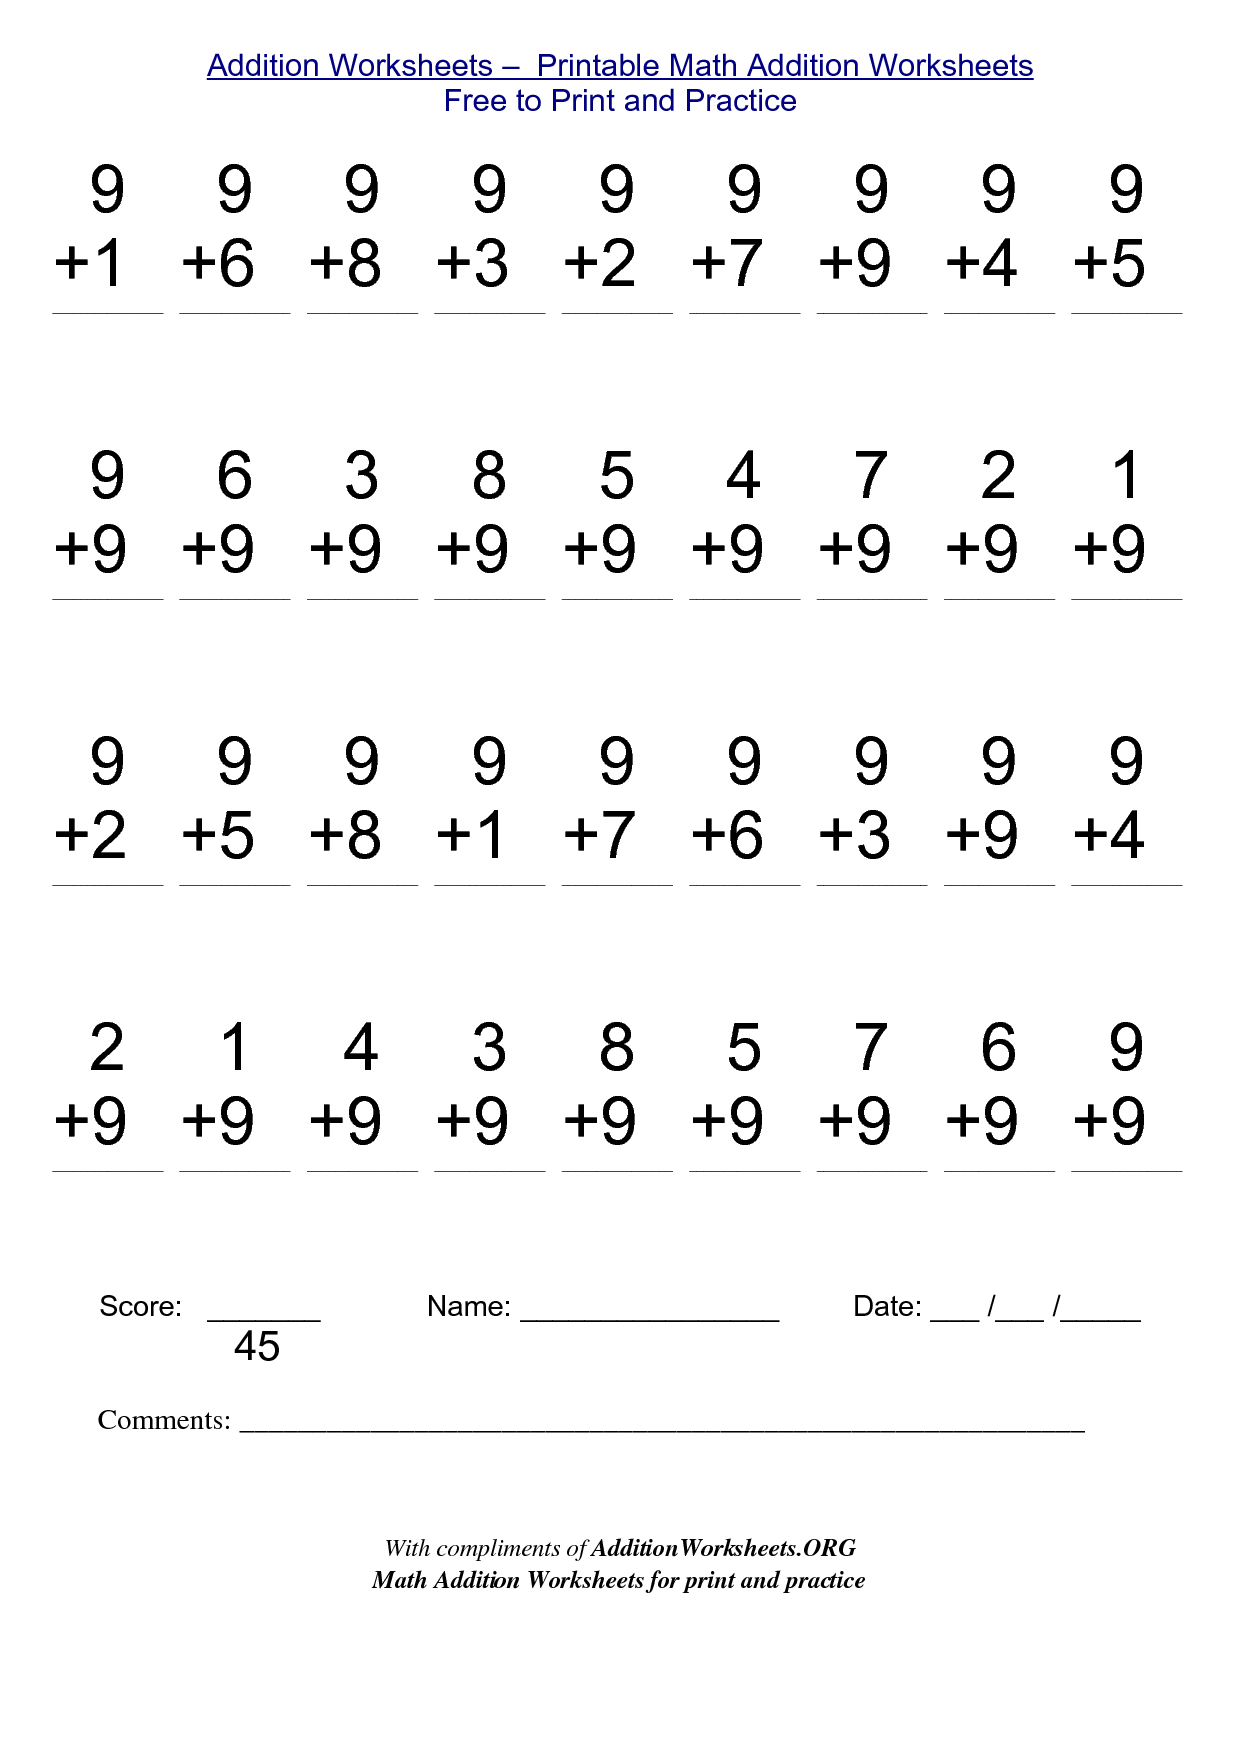 Free Worksheet 100 Addition Facts 120 For Educators – Addition Worksheets Free